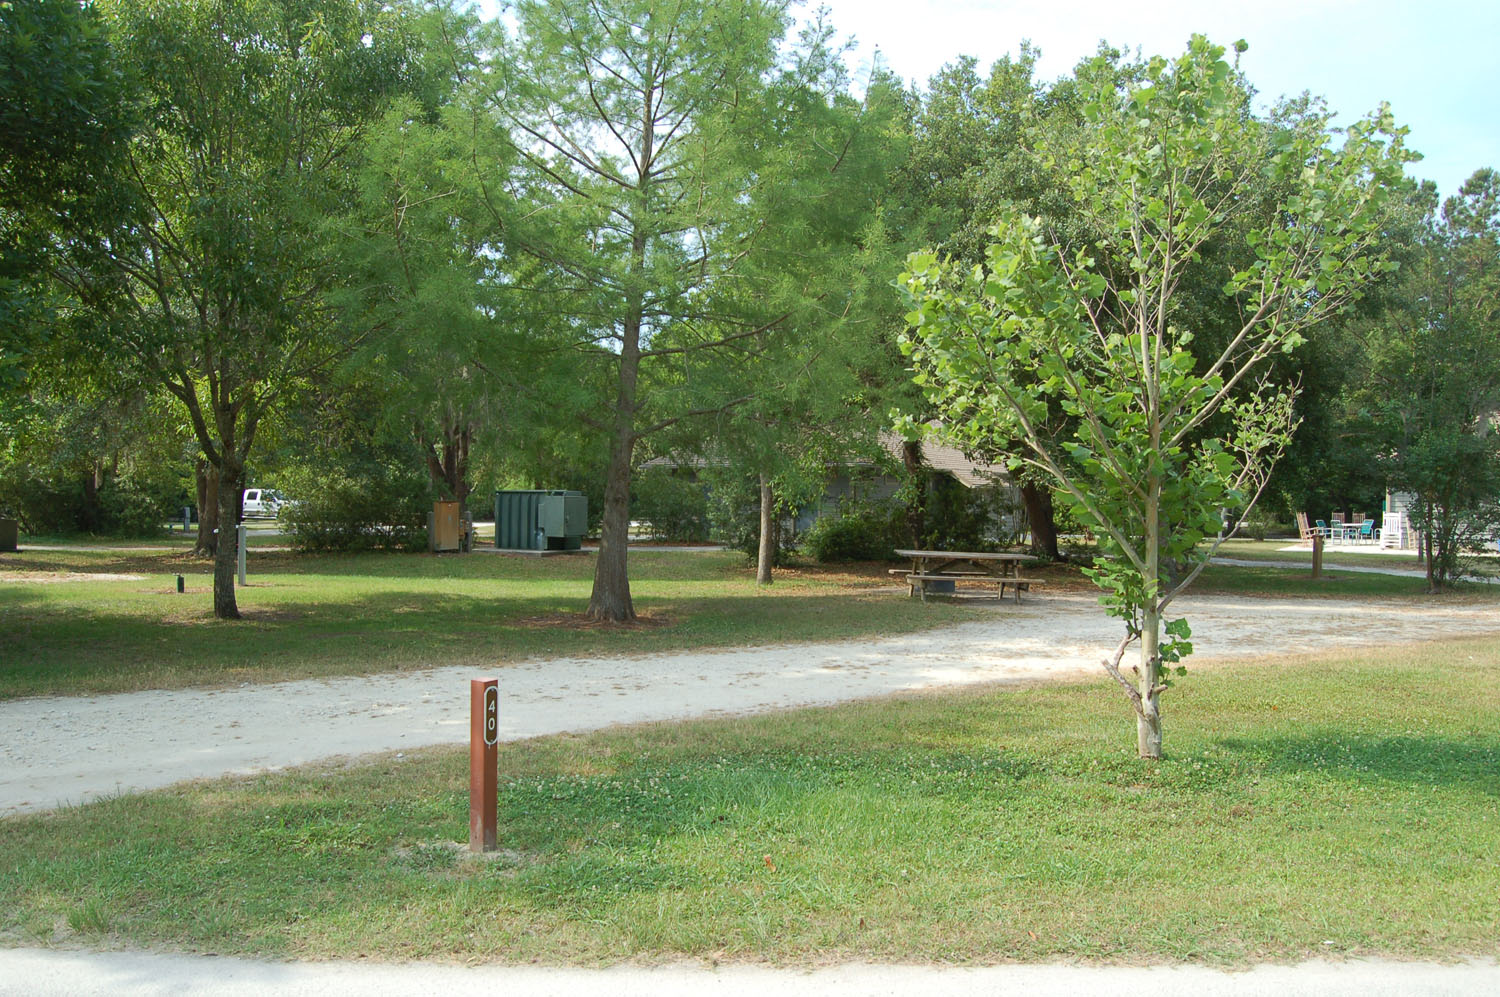 Image of campsite #40 at the Campground at James Island County Park